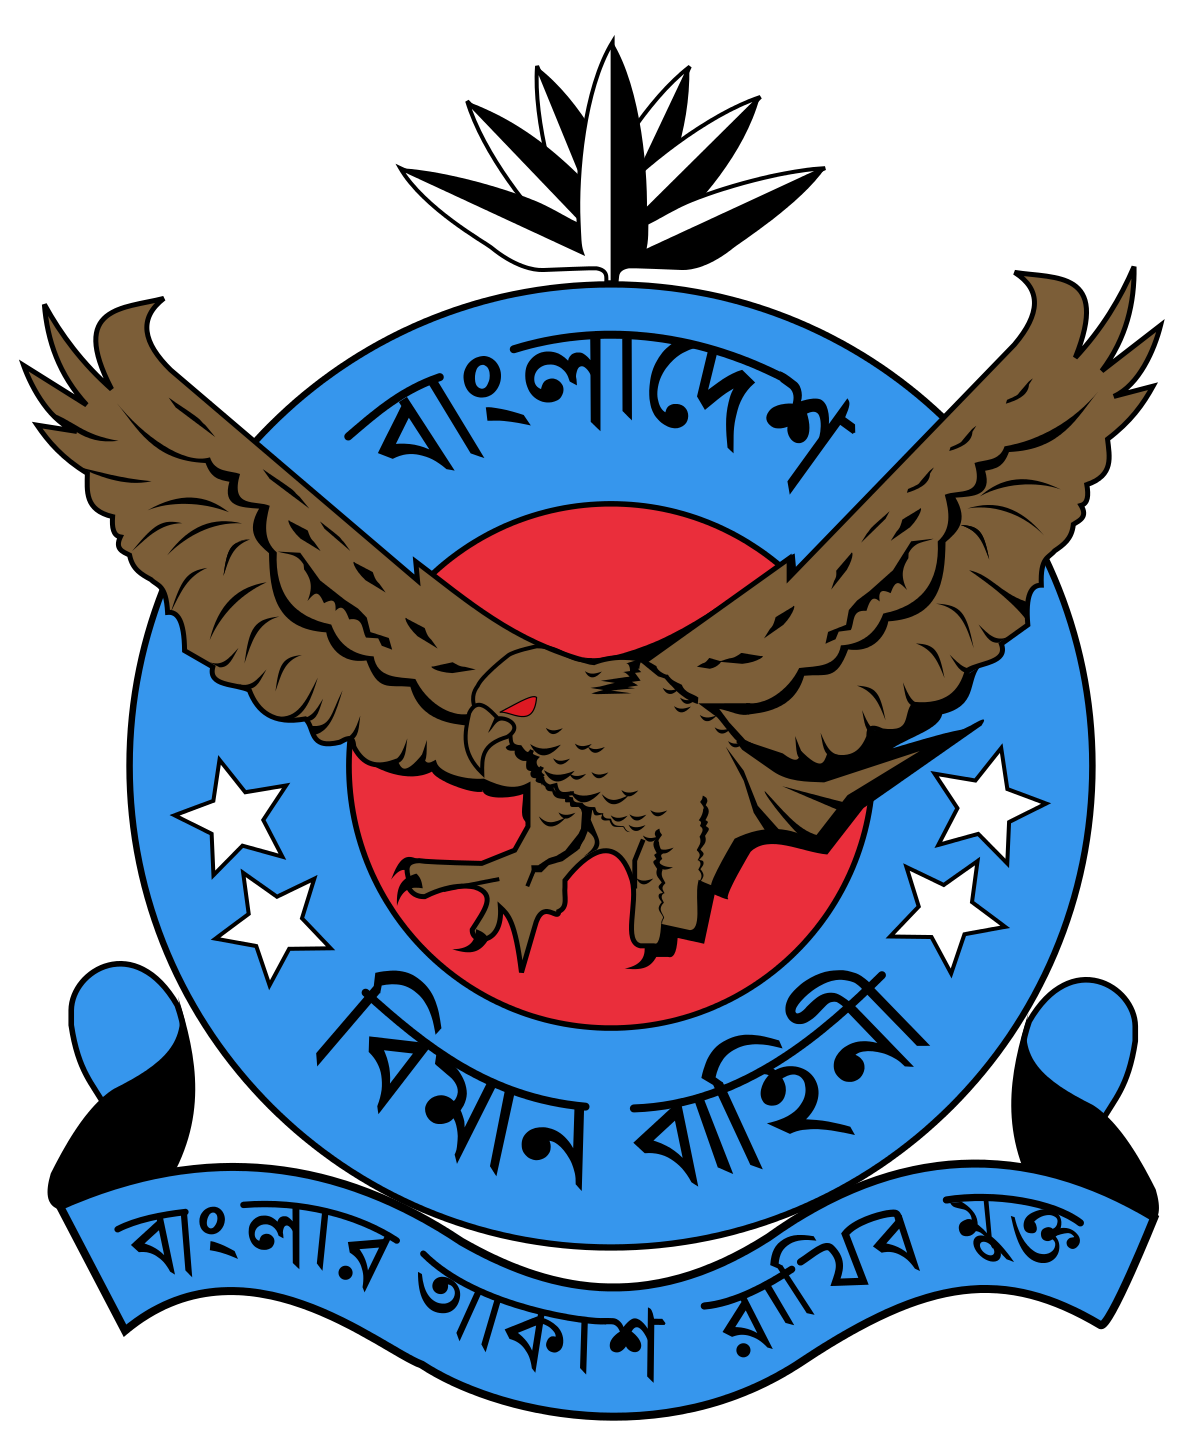 Pilot clipart airplane crash. Bangladesh air force wikipedia